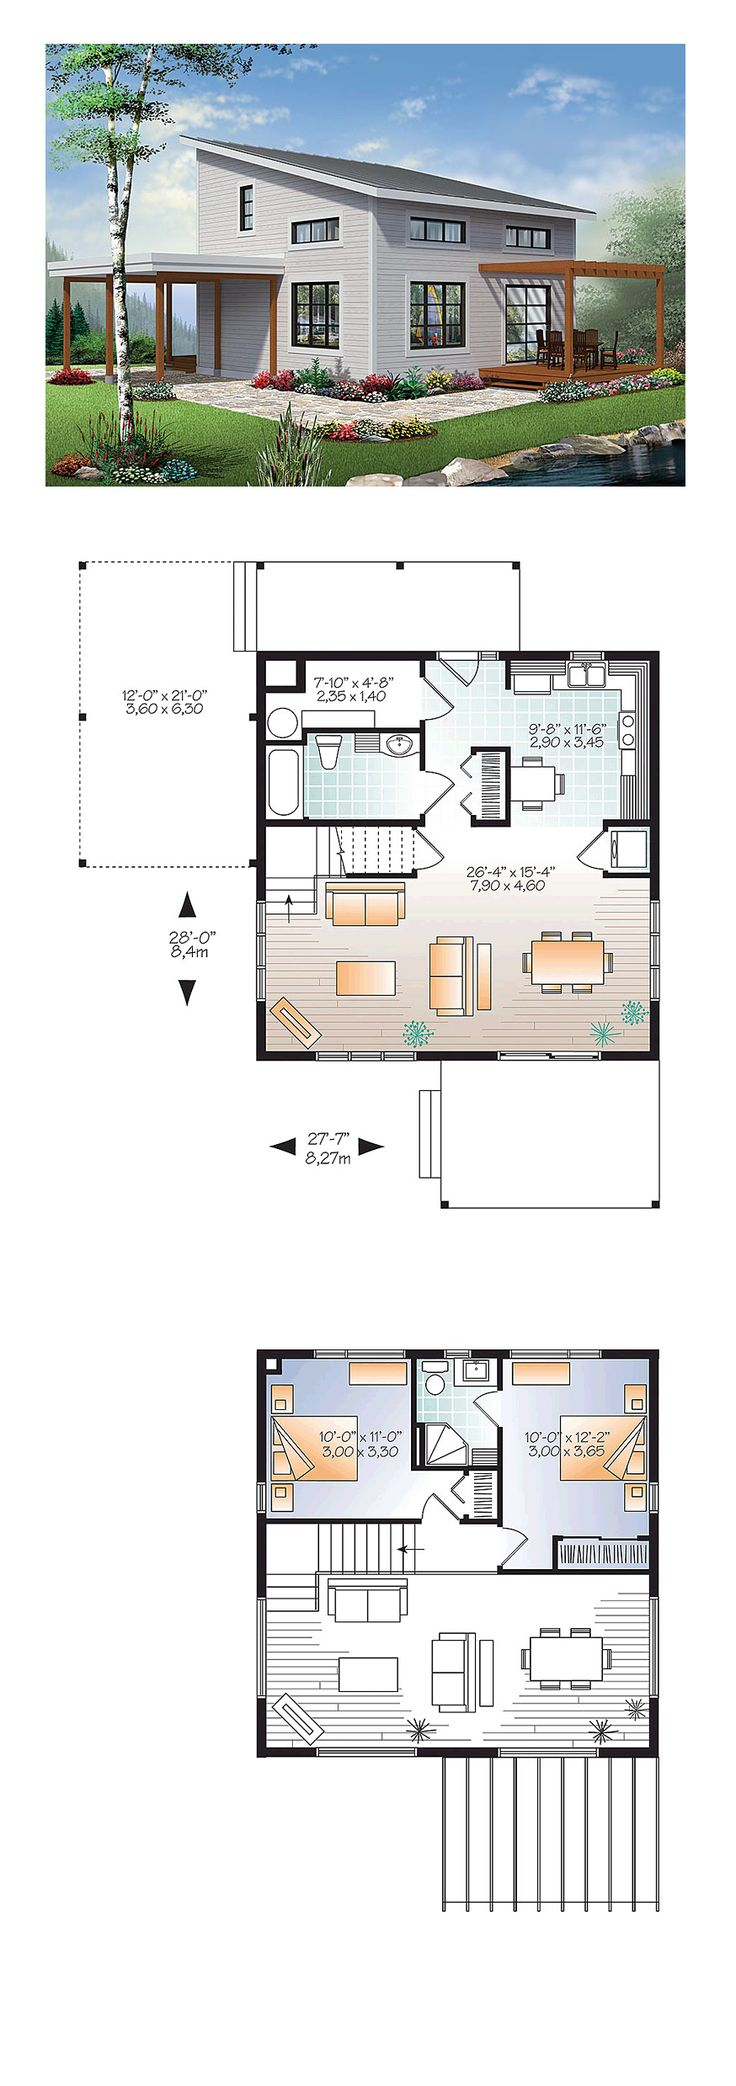 Modern House Plan 1200 sq. ft., 2 bedrooms and 2 bathrooms. This plan has an entrance foyer, an open floor plan living/ dining room with cathedral ceiling along with a mezzanine that has two bedrooms, one a master suite with a full bathroom that includes a corner shower.  #modernhouse